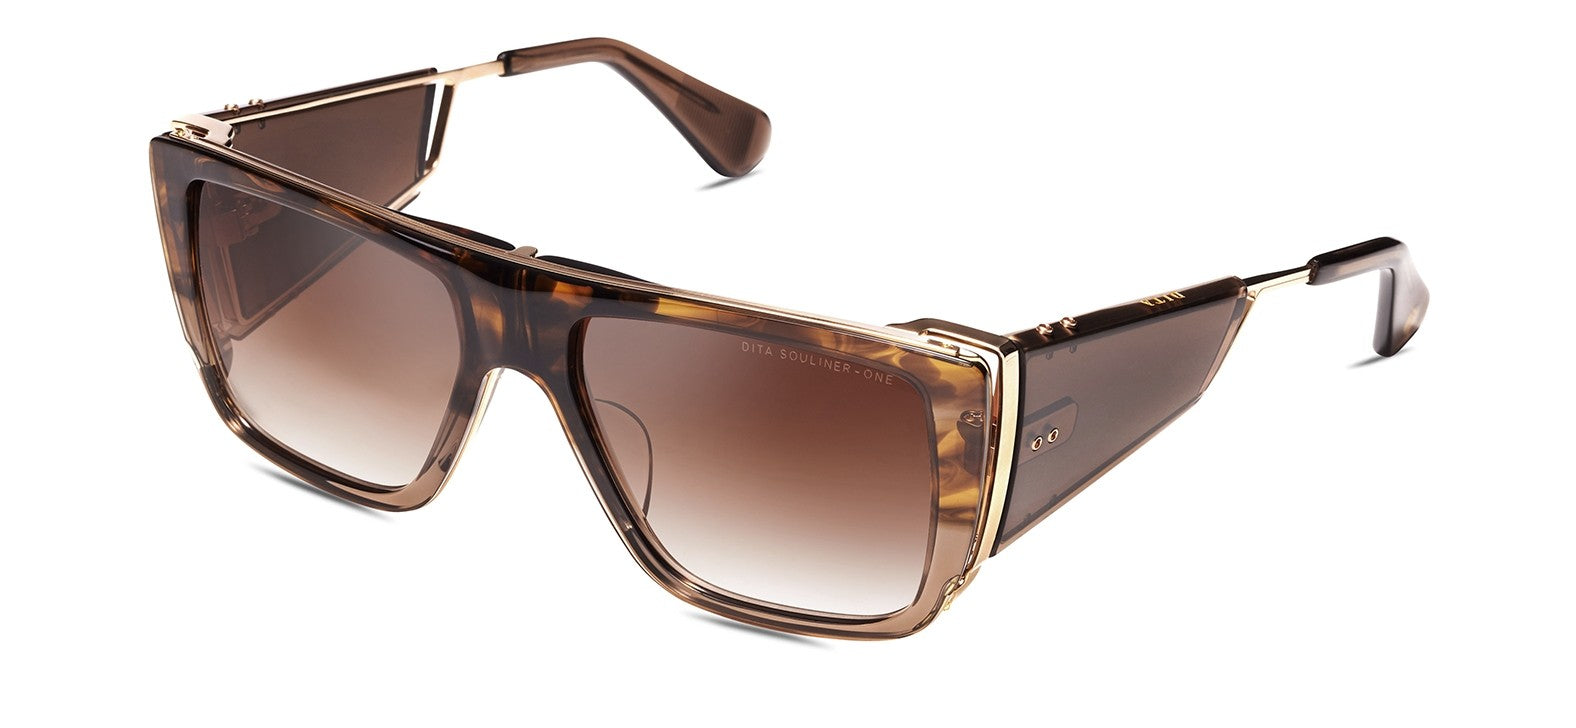 Dita Souliner One - Gold - Albert Hazan Optician